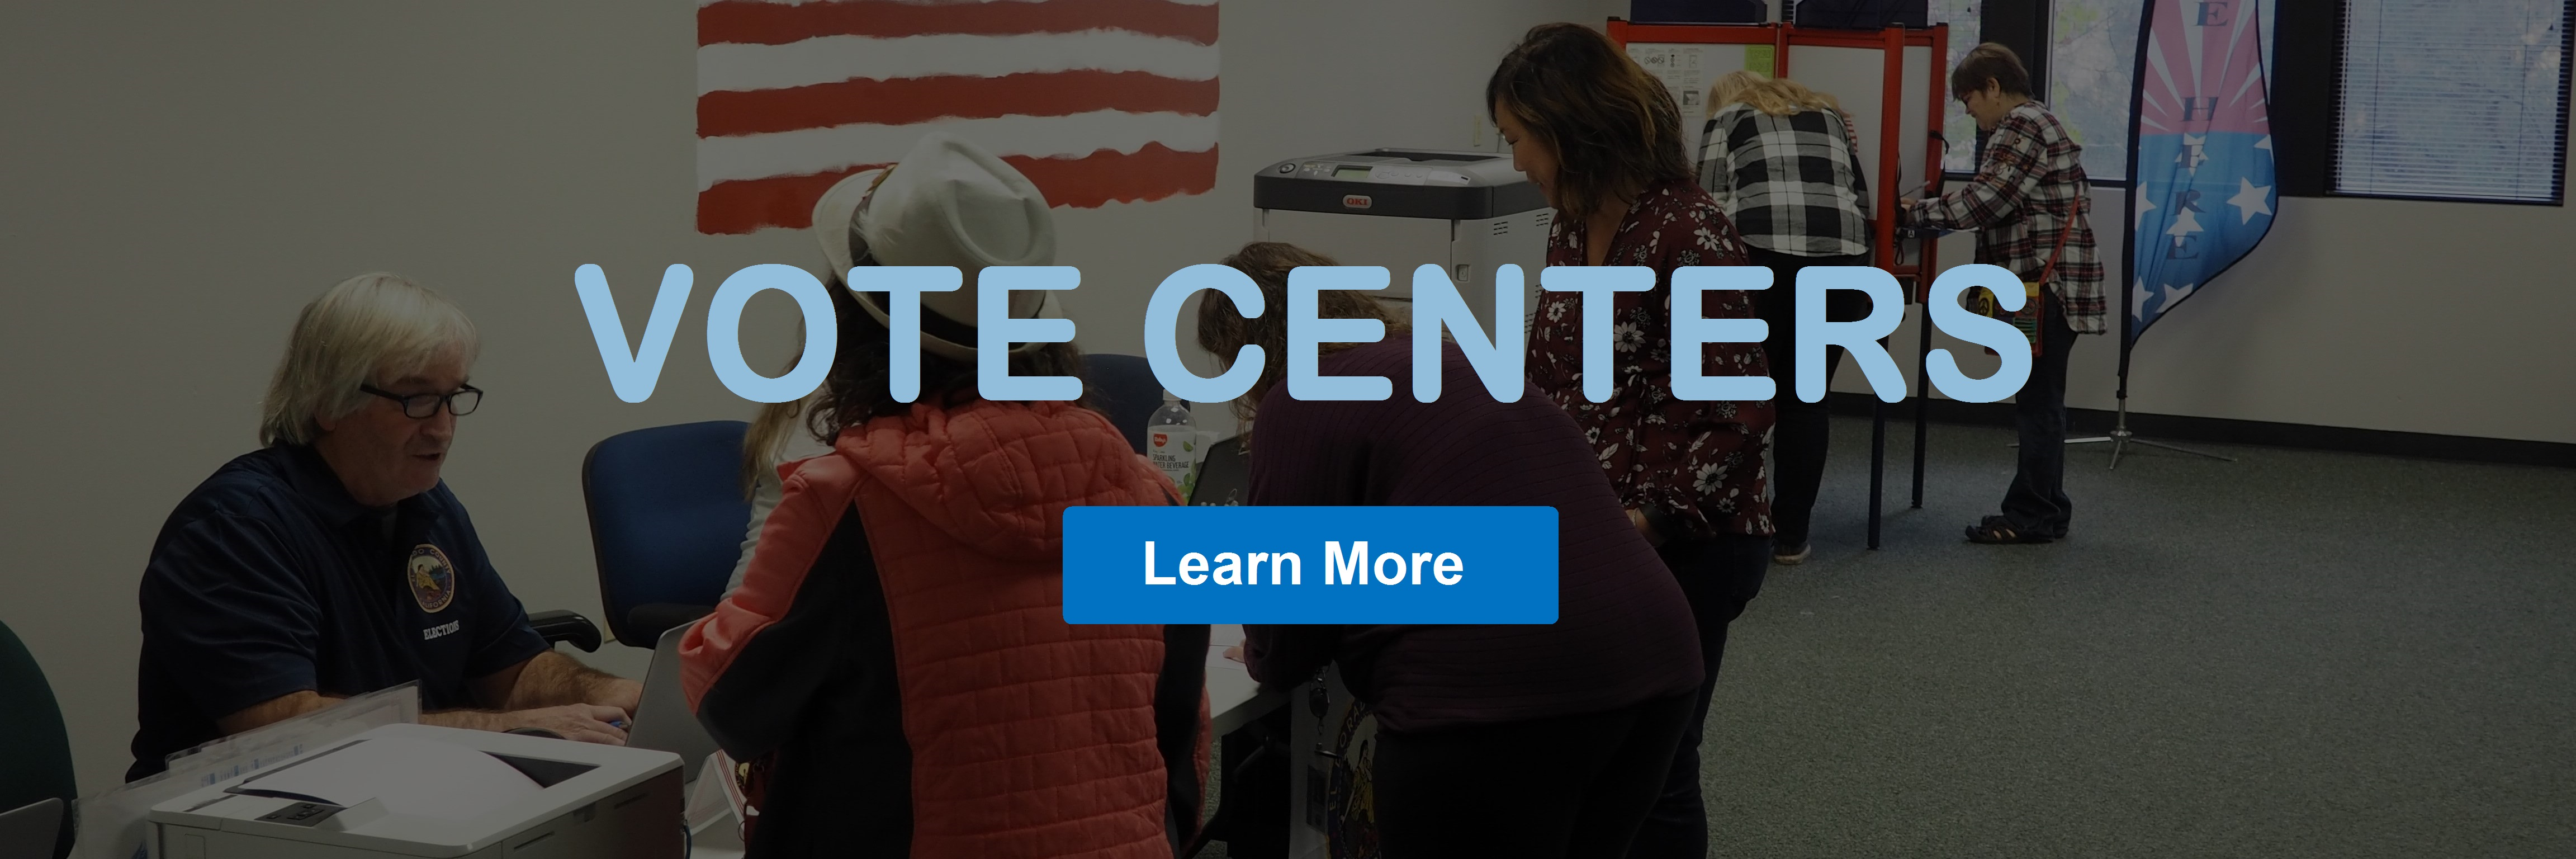 Vote Centers Learn More